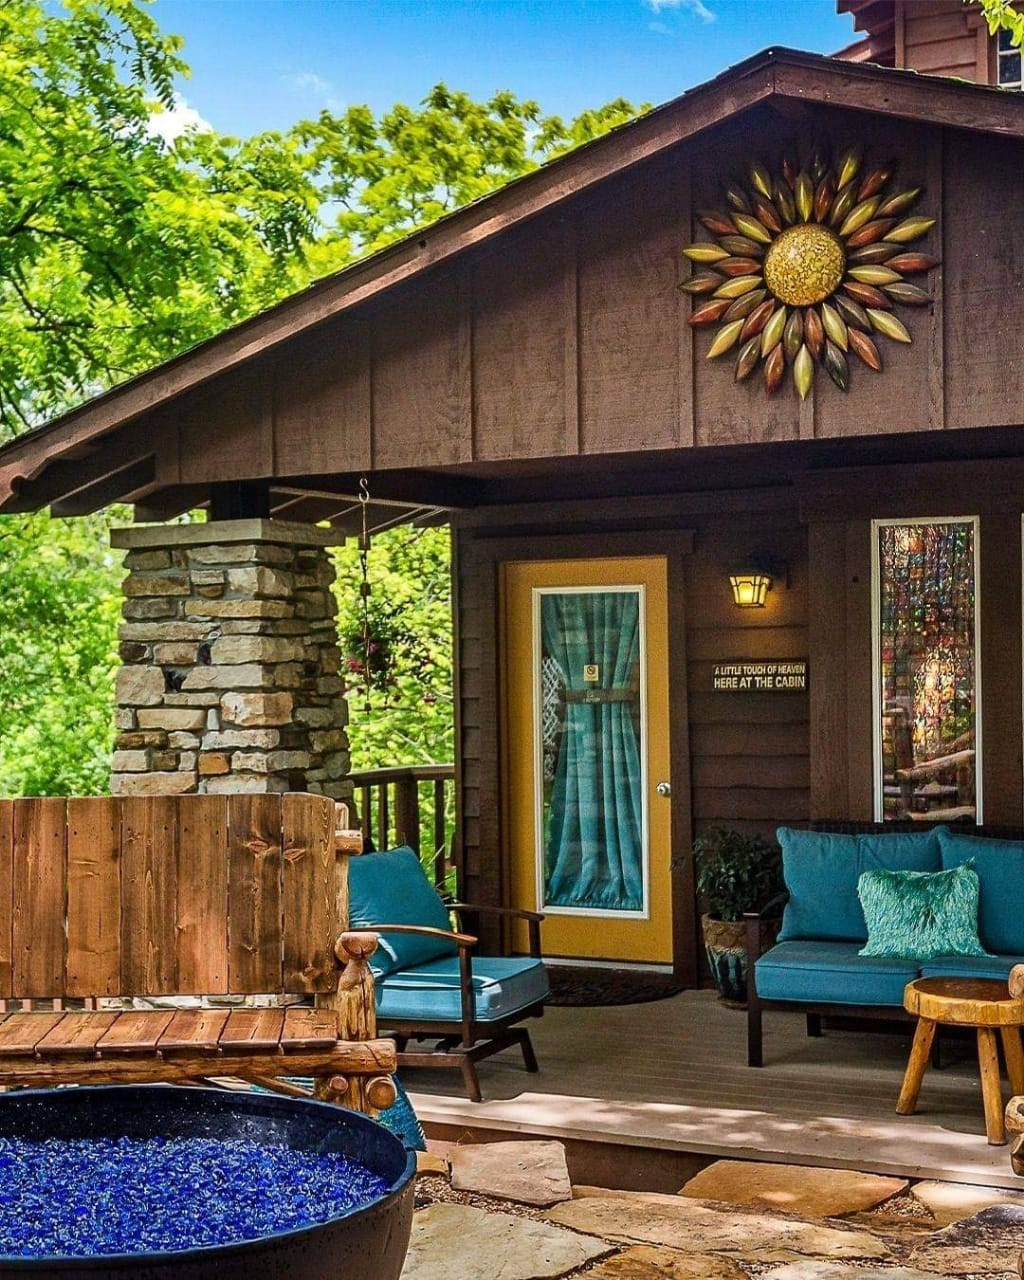 Attractive Exterior Design - Source: The Woods Cabins